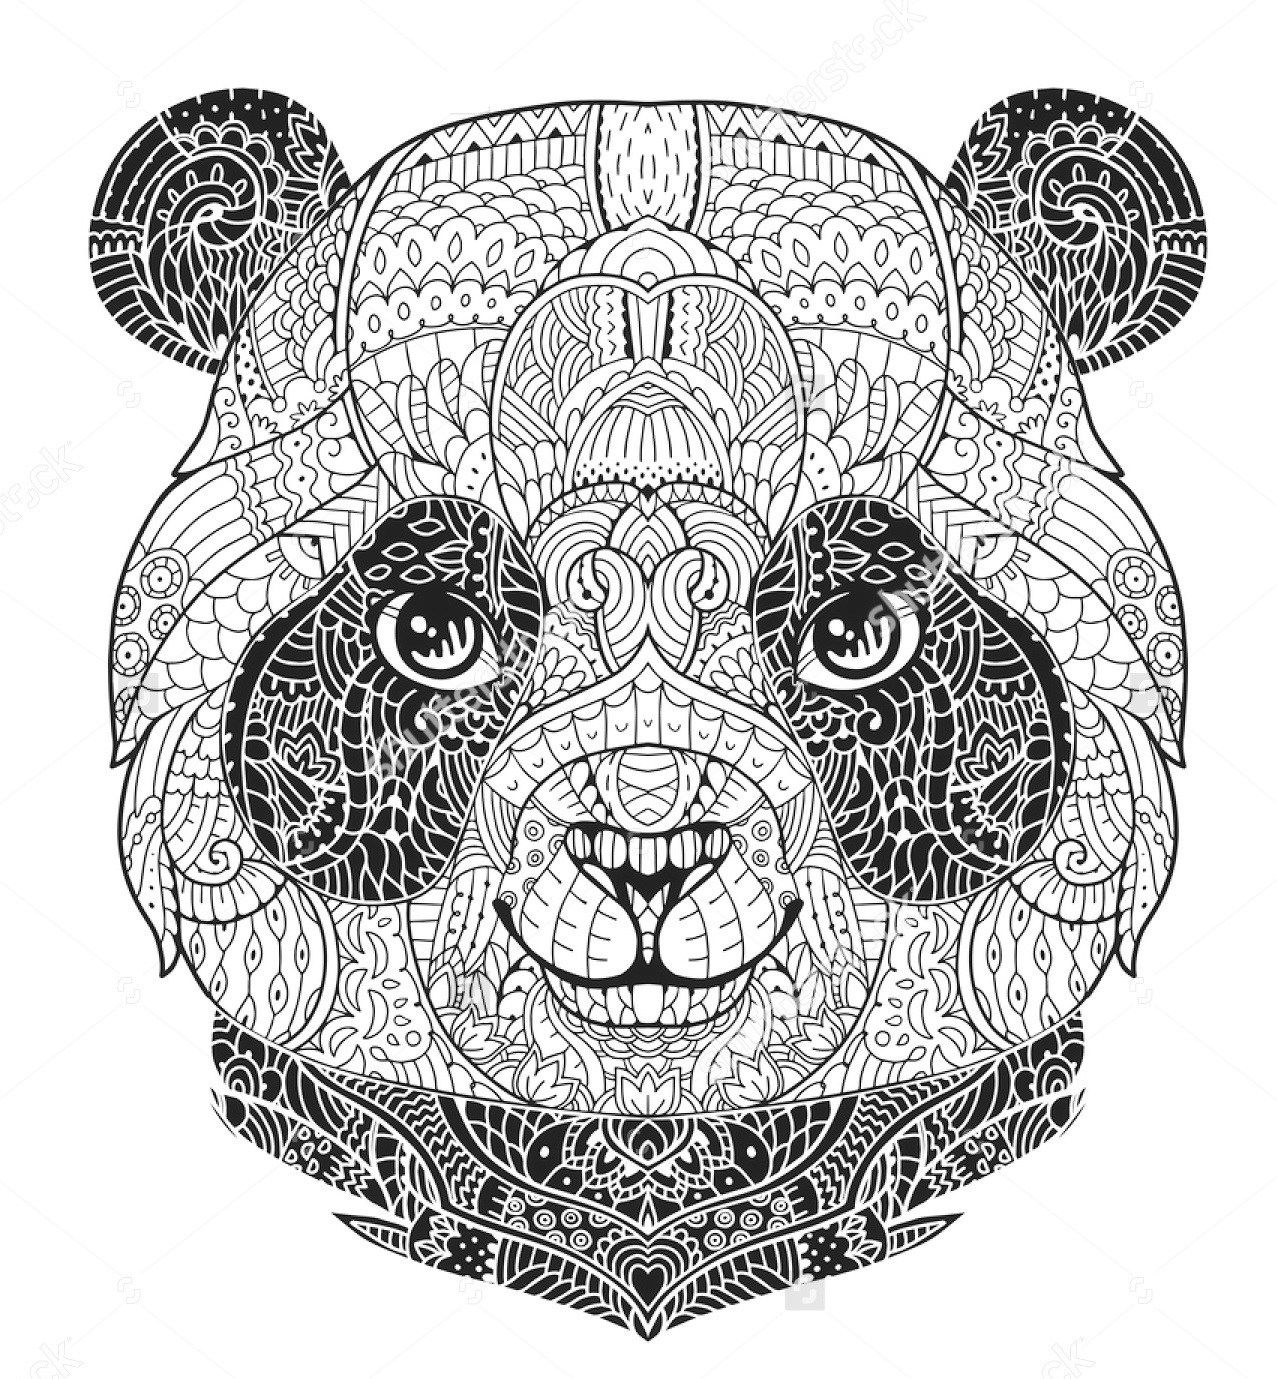 pandas coloring pages panda bear coloring pages to download and print for free pages coloring pandas